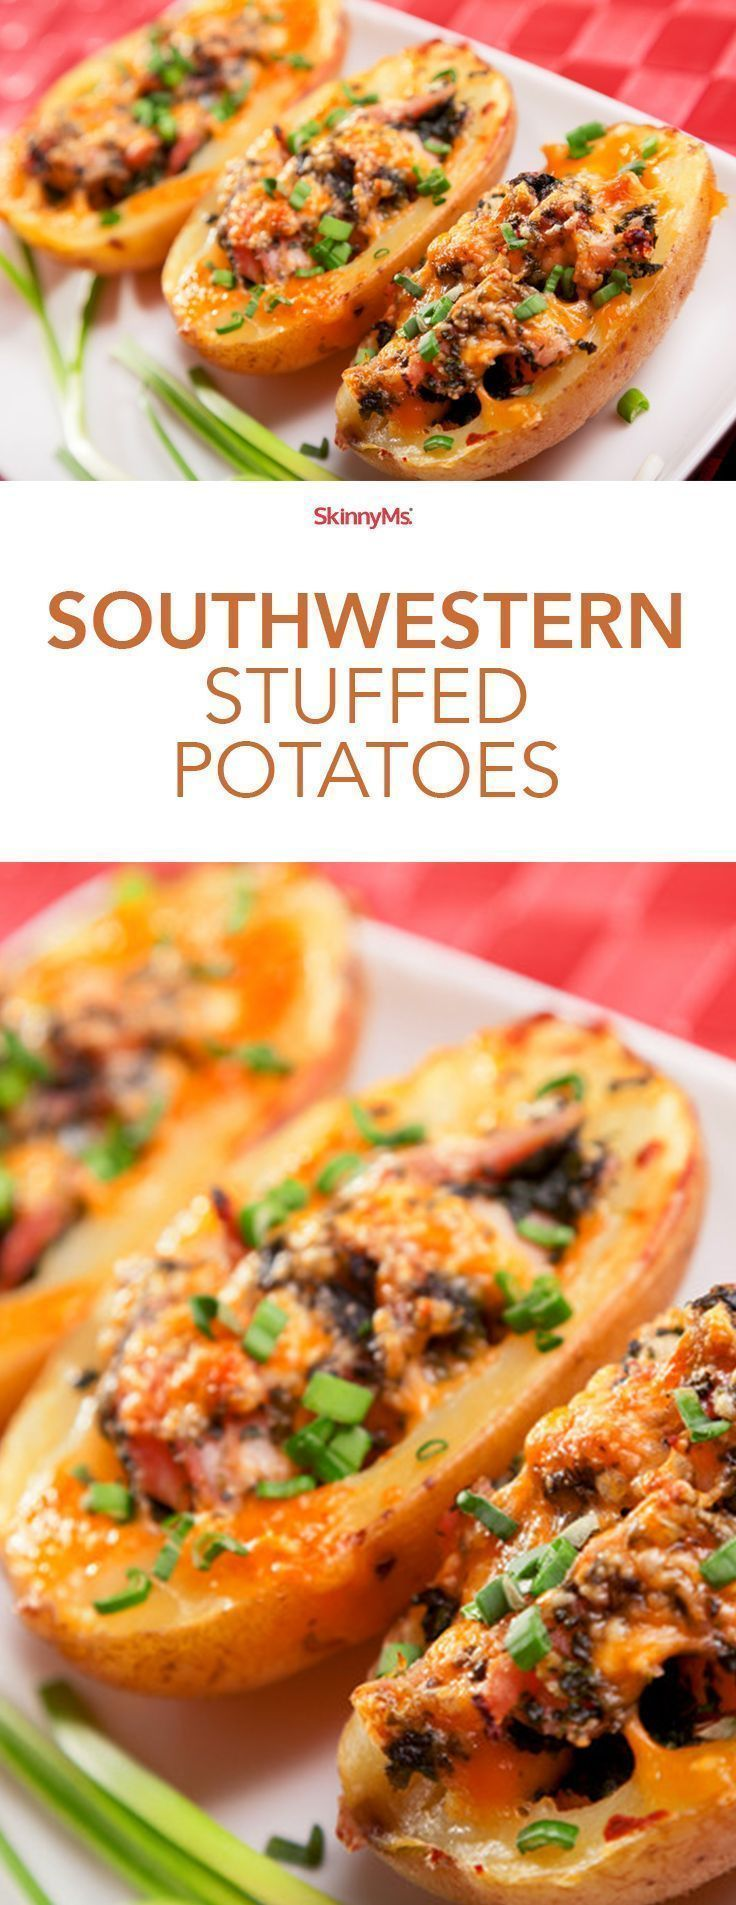 Hearty and guilt-free, these Southwestern Style Potatoes add excitement to any meal! #skinnyms